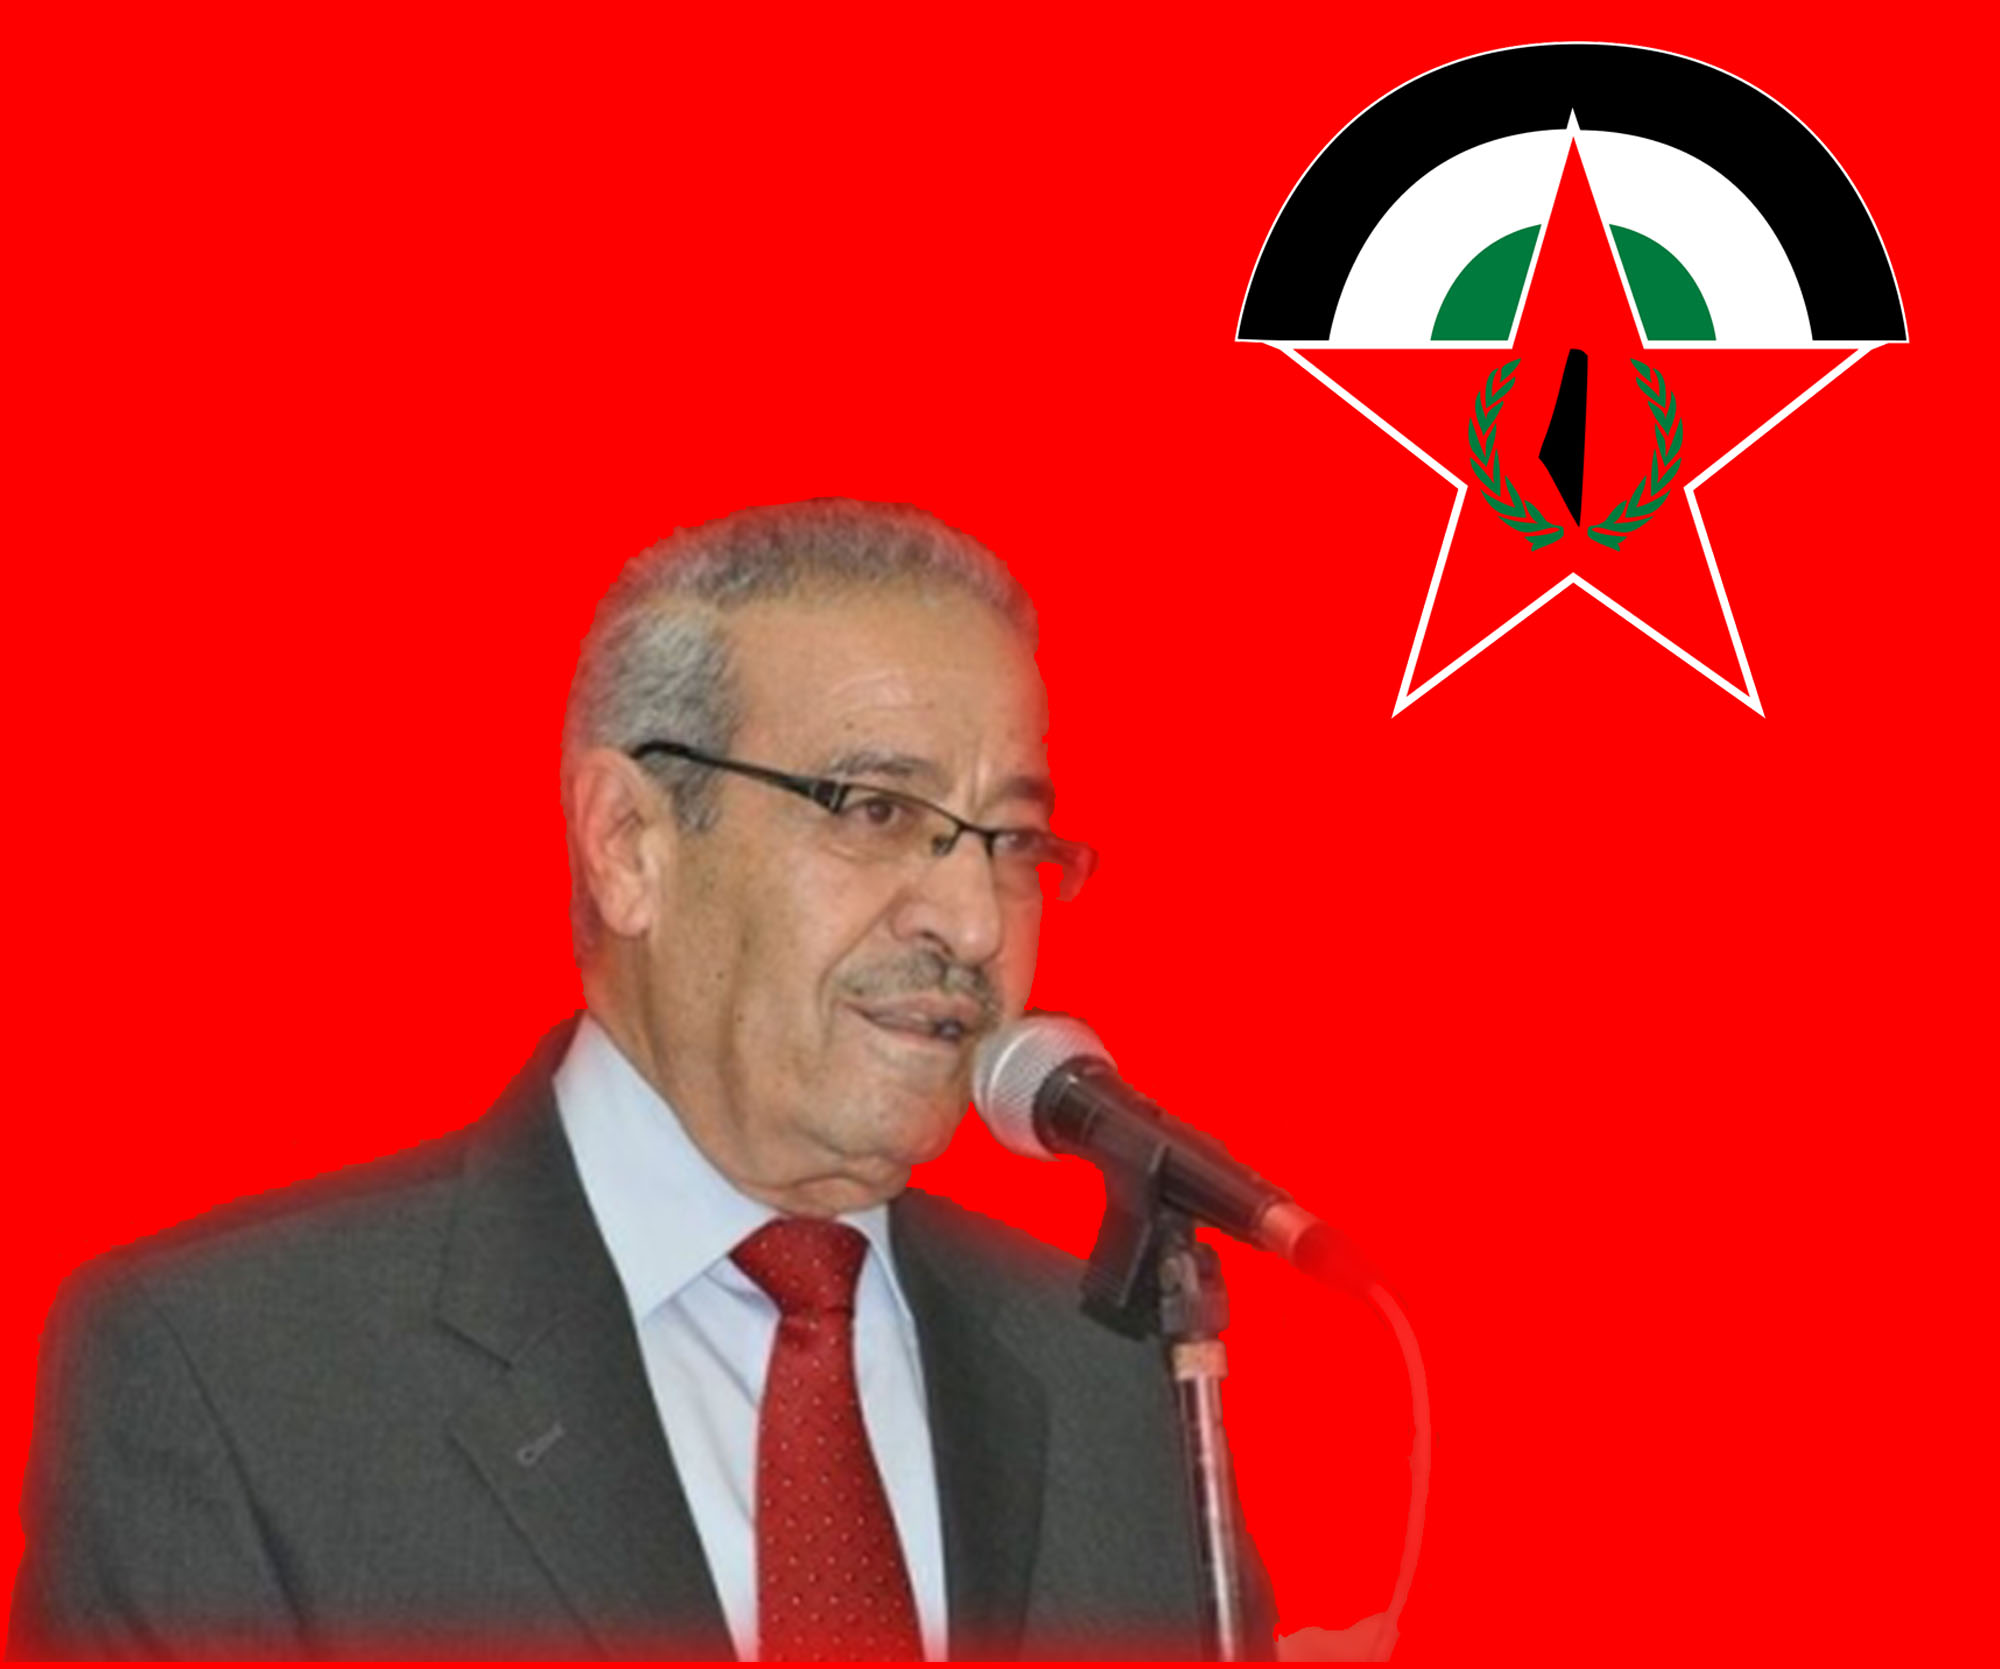 Taysir Khaled: The United States is not qualified to sponsor Palestinian-Israeli negotiations